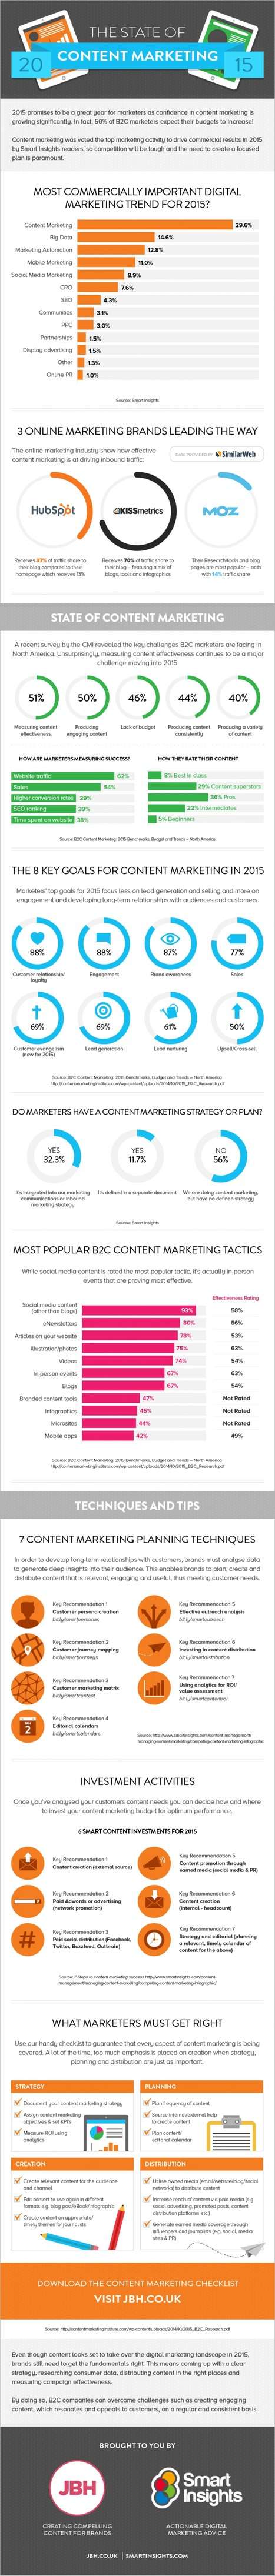 #Infographic 2015's Biggest Content Marketing Trends | Searchengineoptimization | Scoop.it